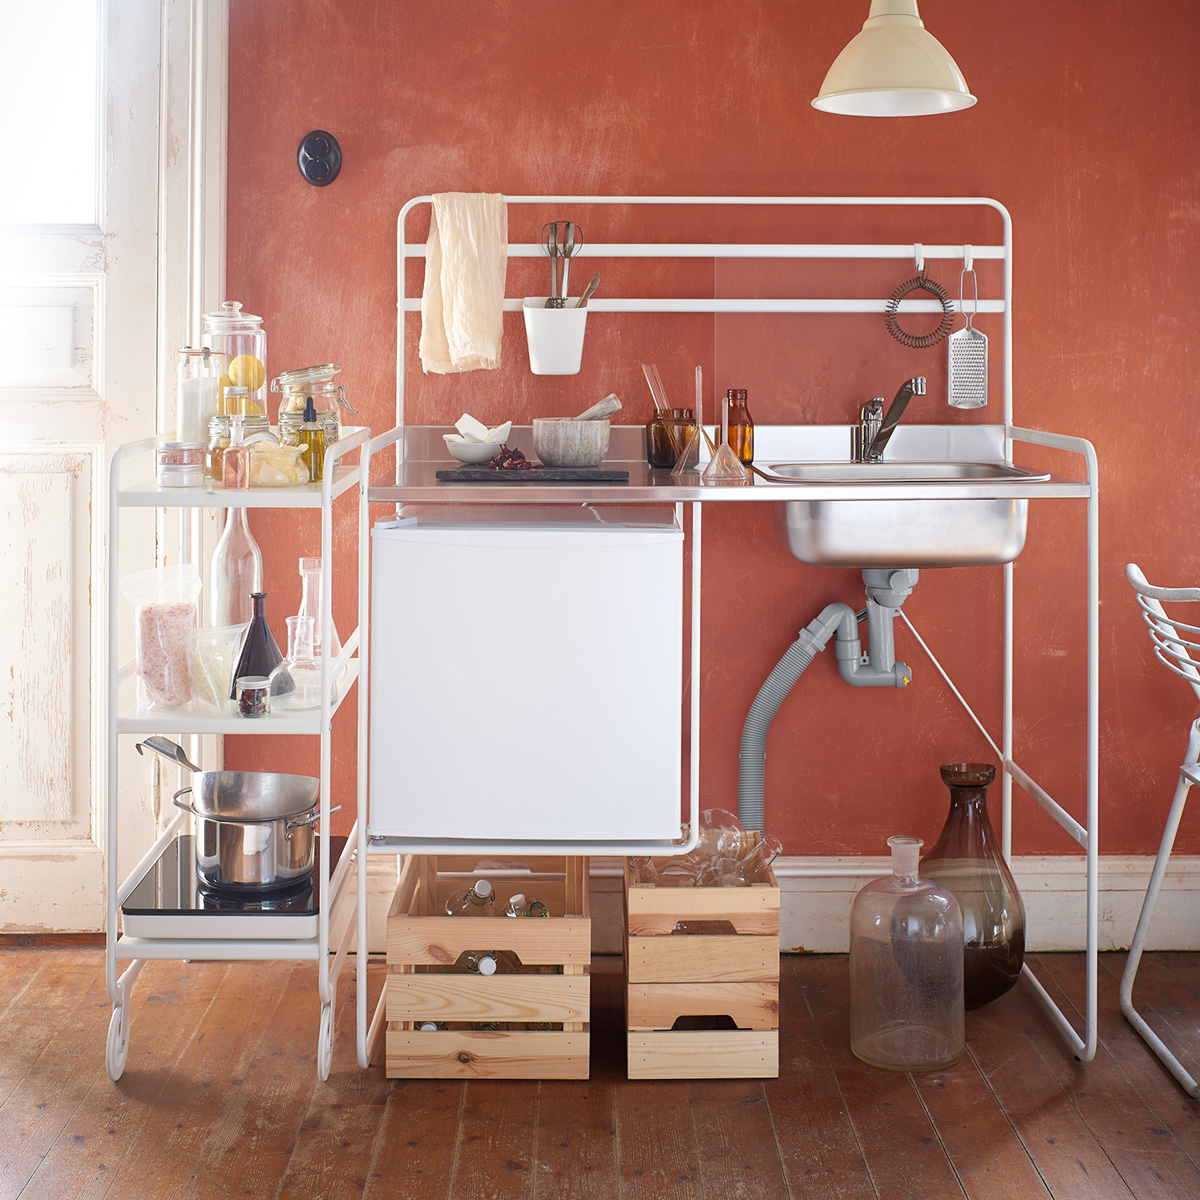 Ikea Is Selling a $169 Mini Kitchen for Small Apartments